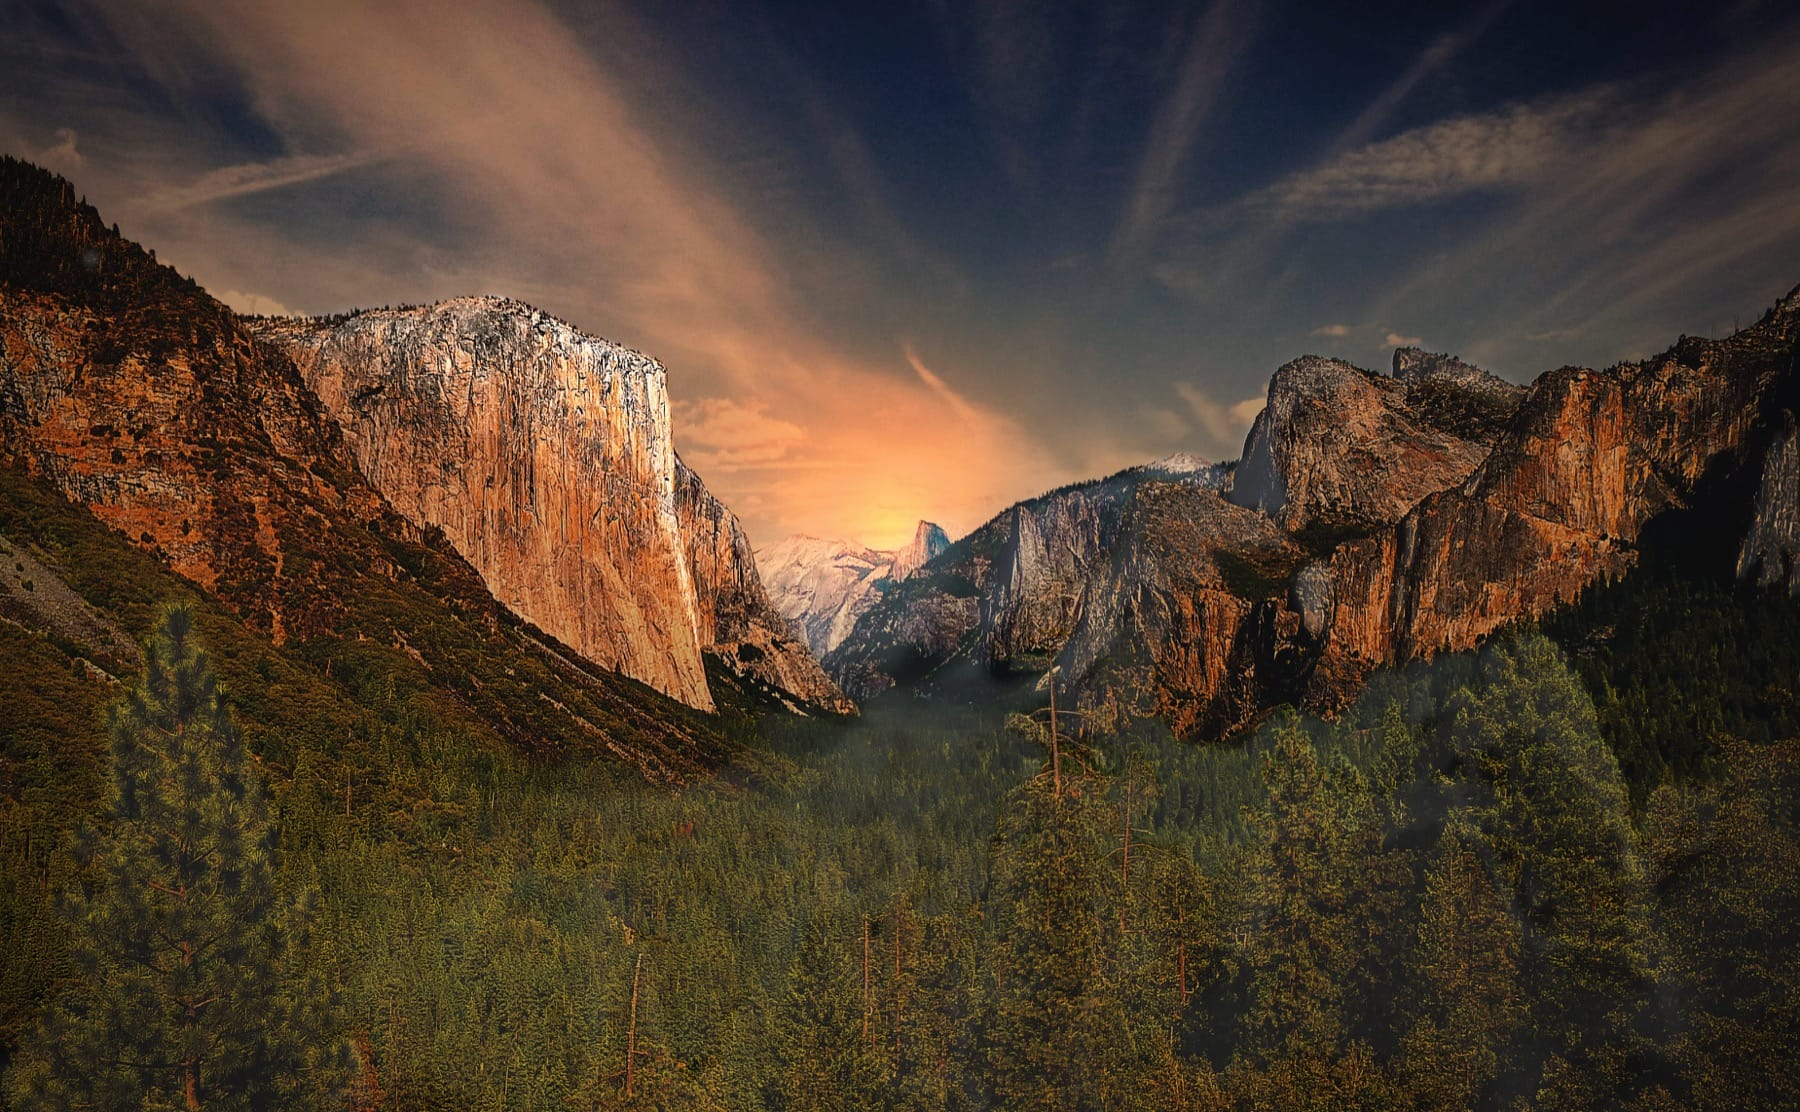 Yosemite Valley is stunning